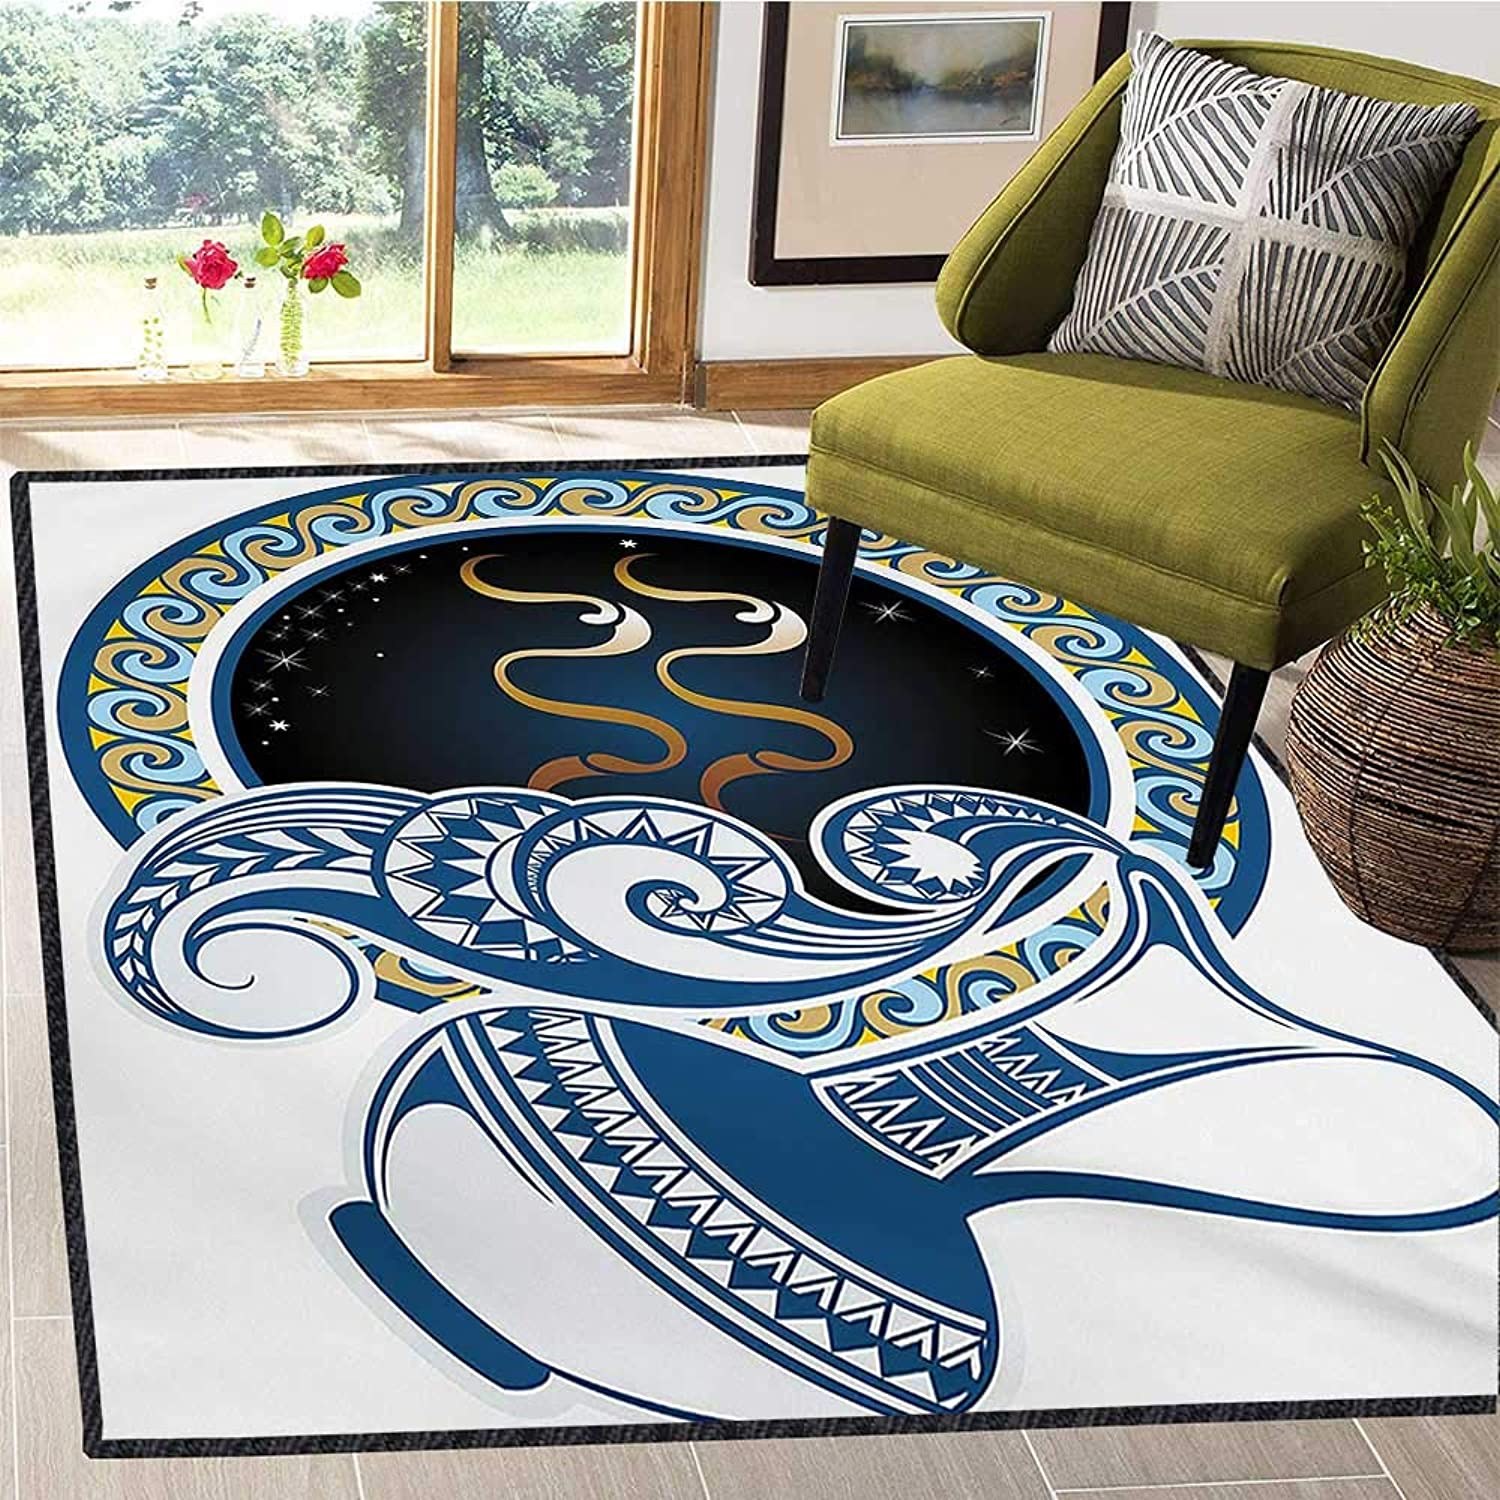 Zodiac, Door Mats for Inside, Image of Aquarius Sign with Jug and Circular Globe World Form on The Background, Door Mat Indoors 6x7 Ft bluee and gold